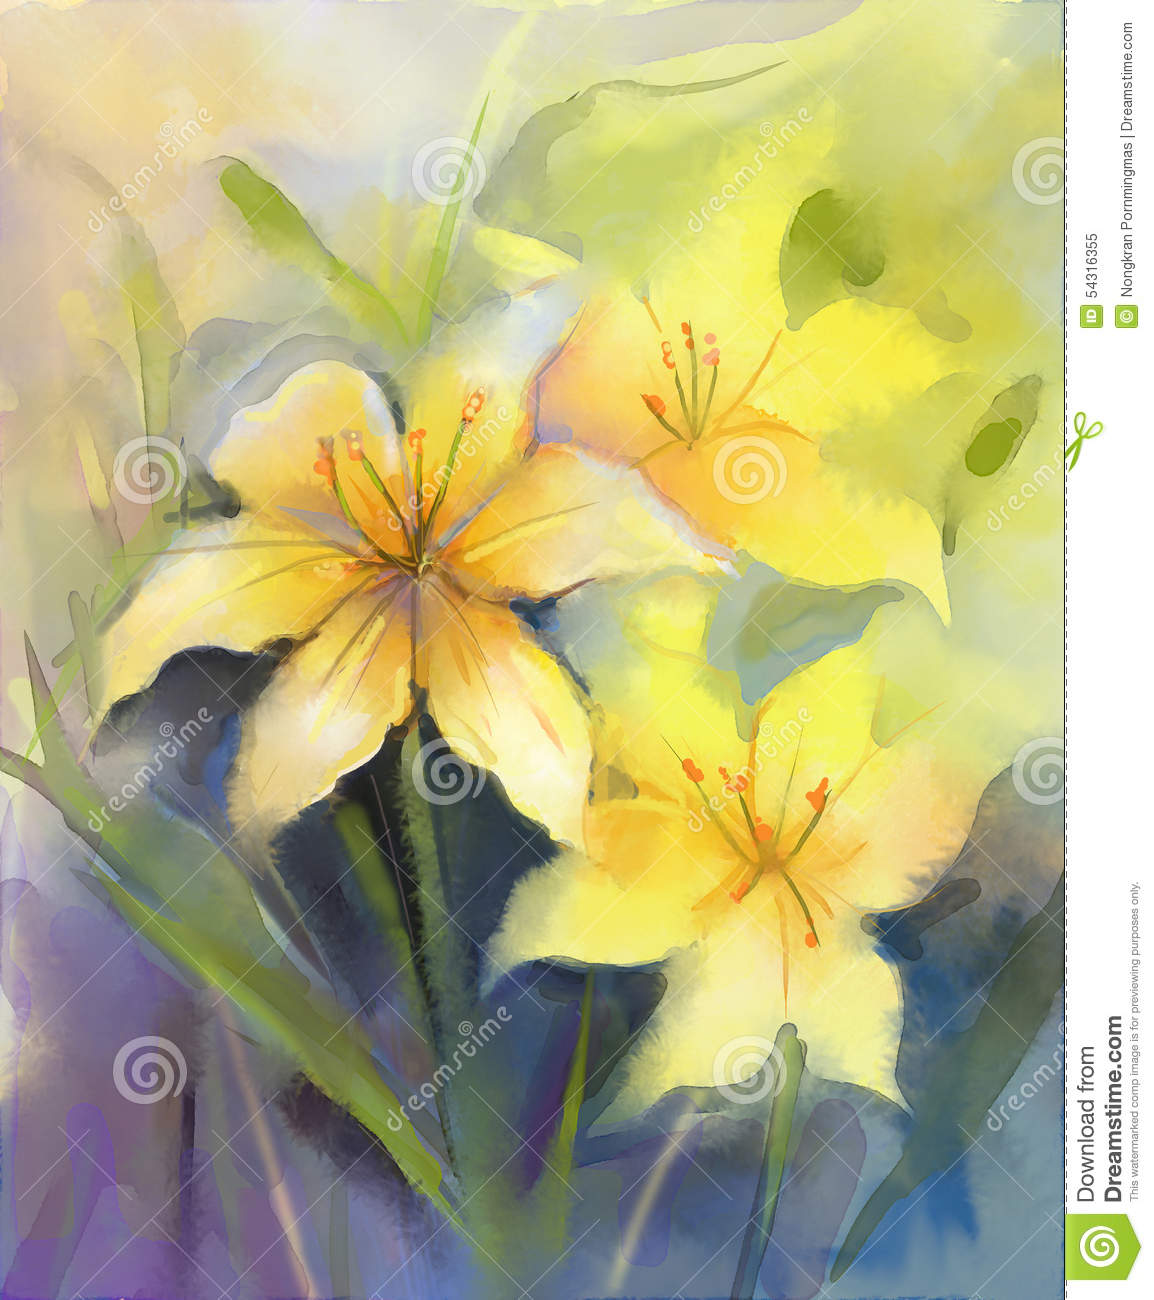 Watercolor Painting Yellow Lily Flower Stock Illustration